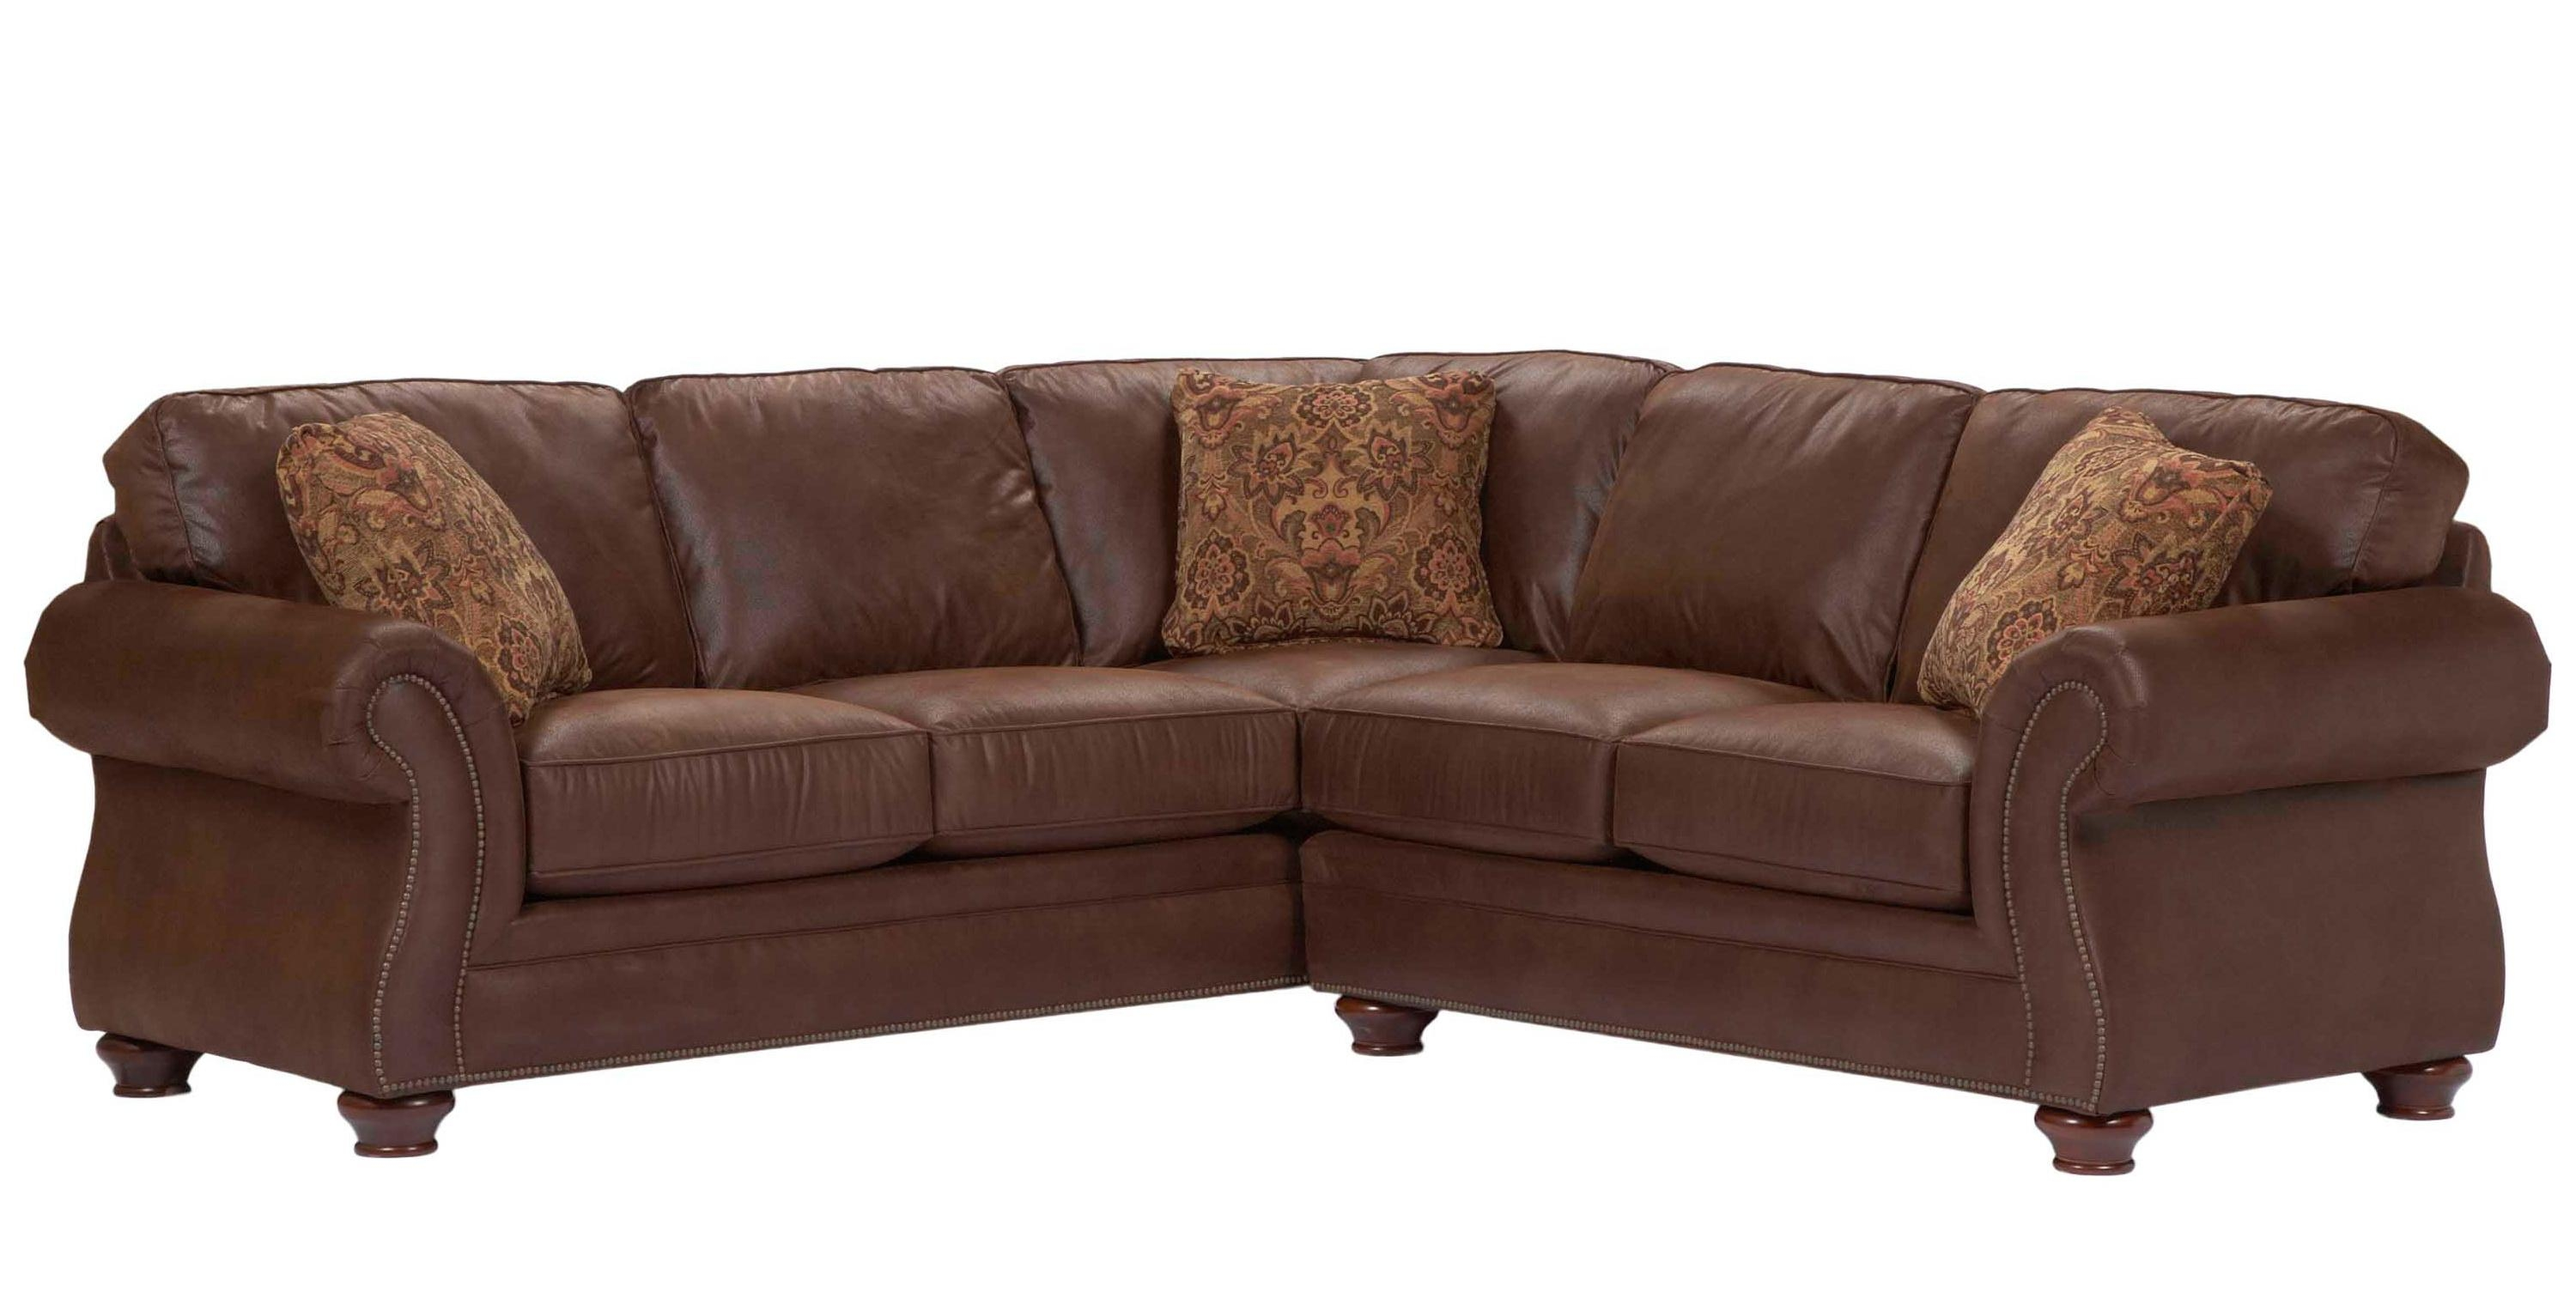 Broyhill Laramie Sectional 5080 1Q/5080 4Q With Regard To Broyhill Sectional Sofas (View 8 of 15)